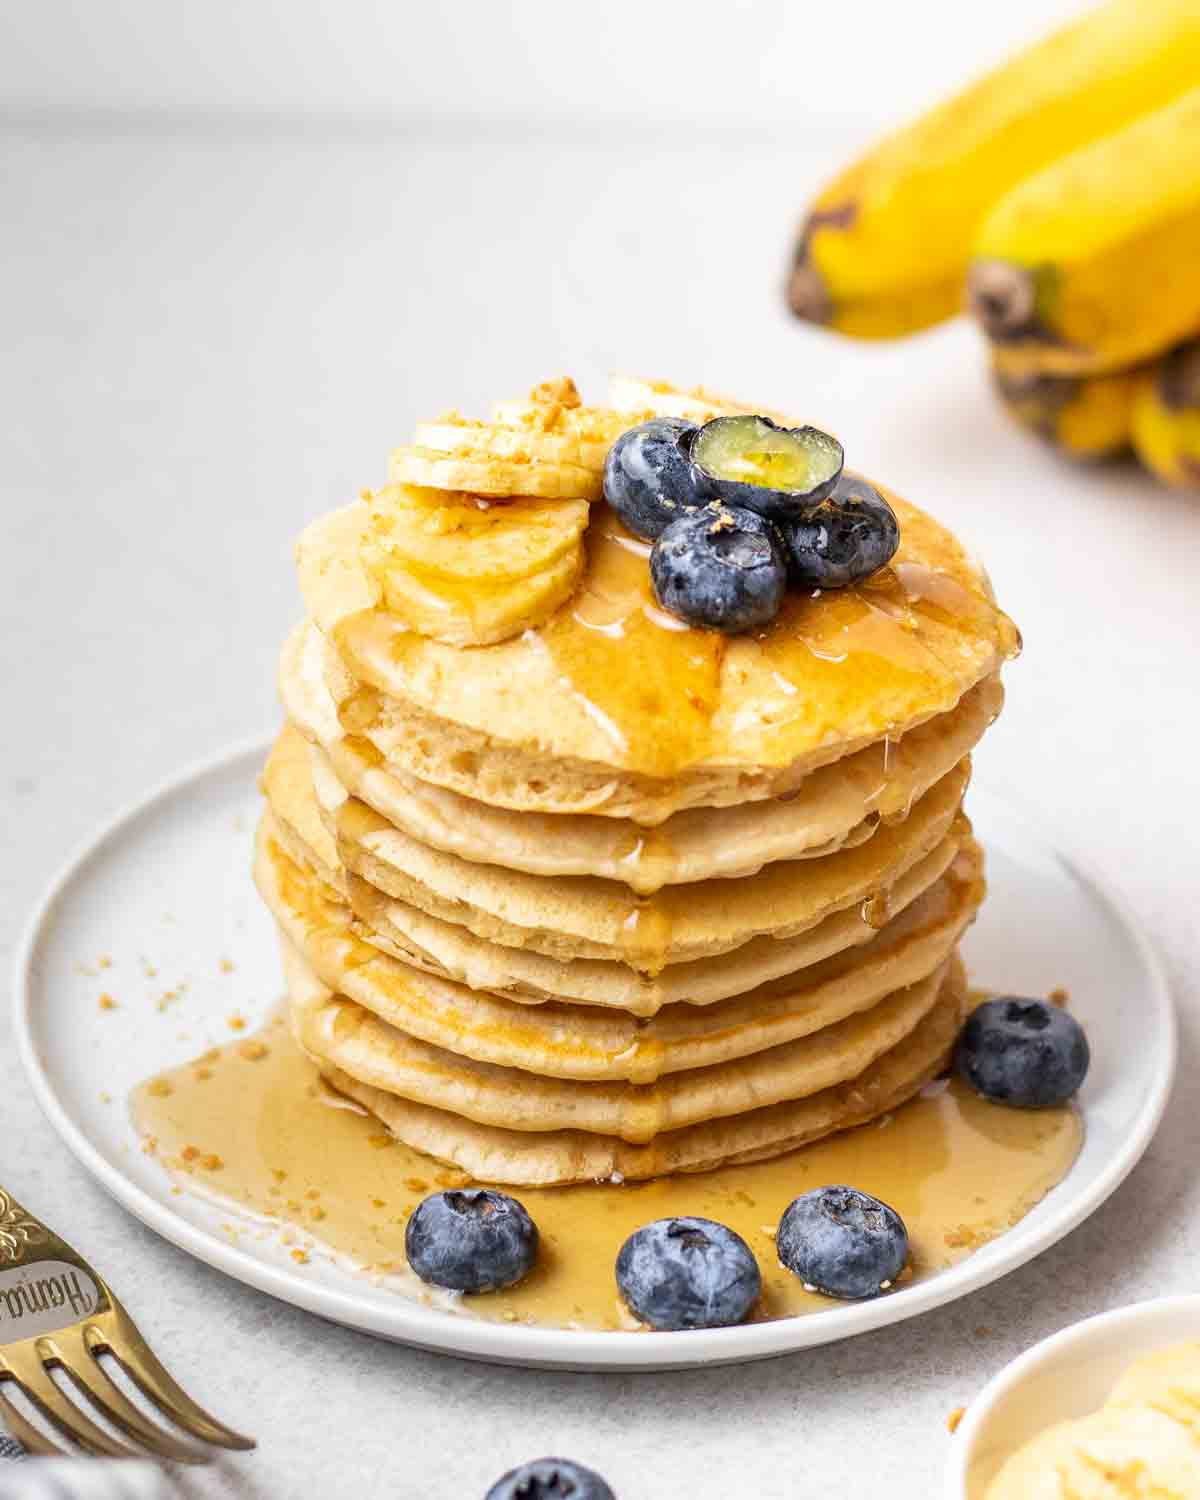 Maple syrup dripping off a stack of pancakes in a blue plate with a bunch of bananas in the background.